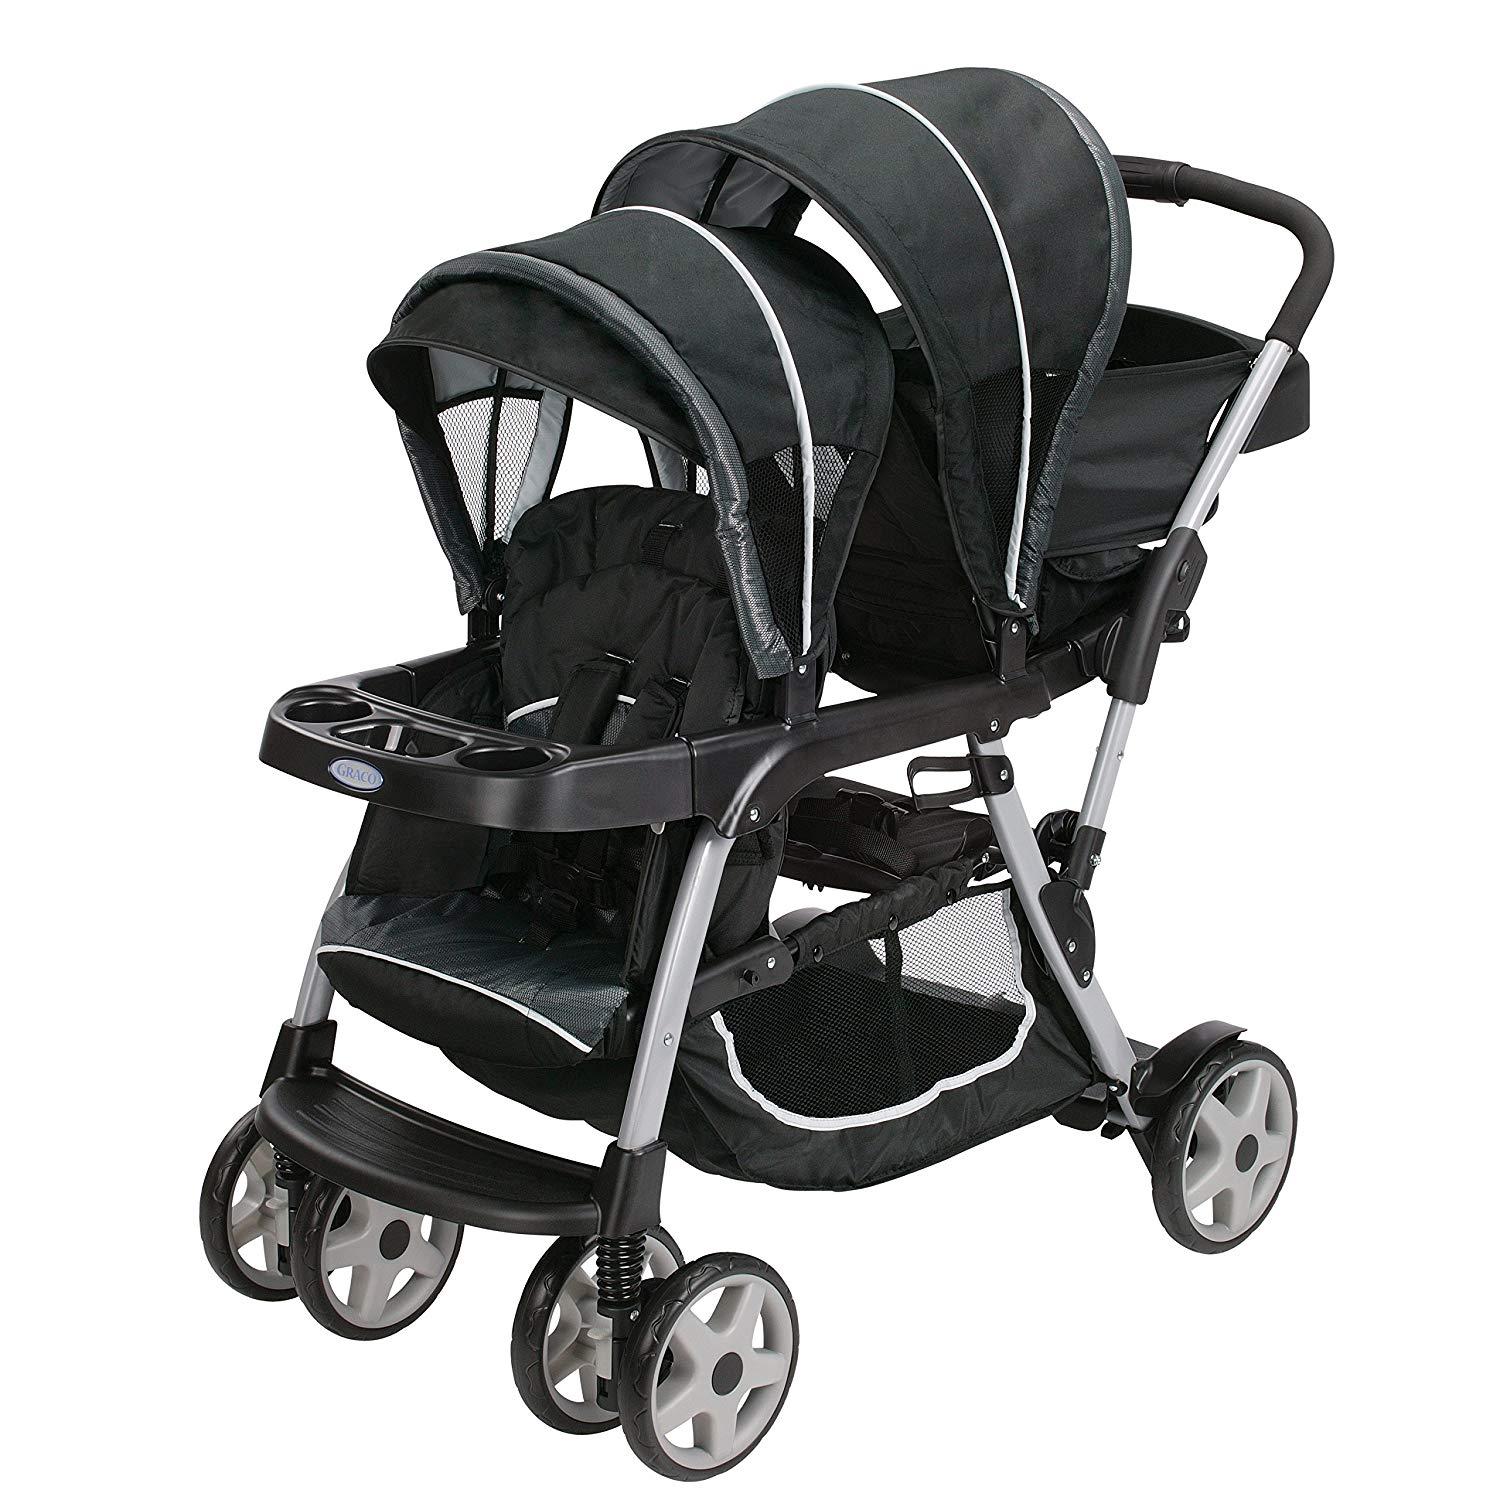 Best Compact Stroller with Add-ons